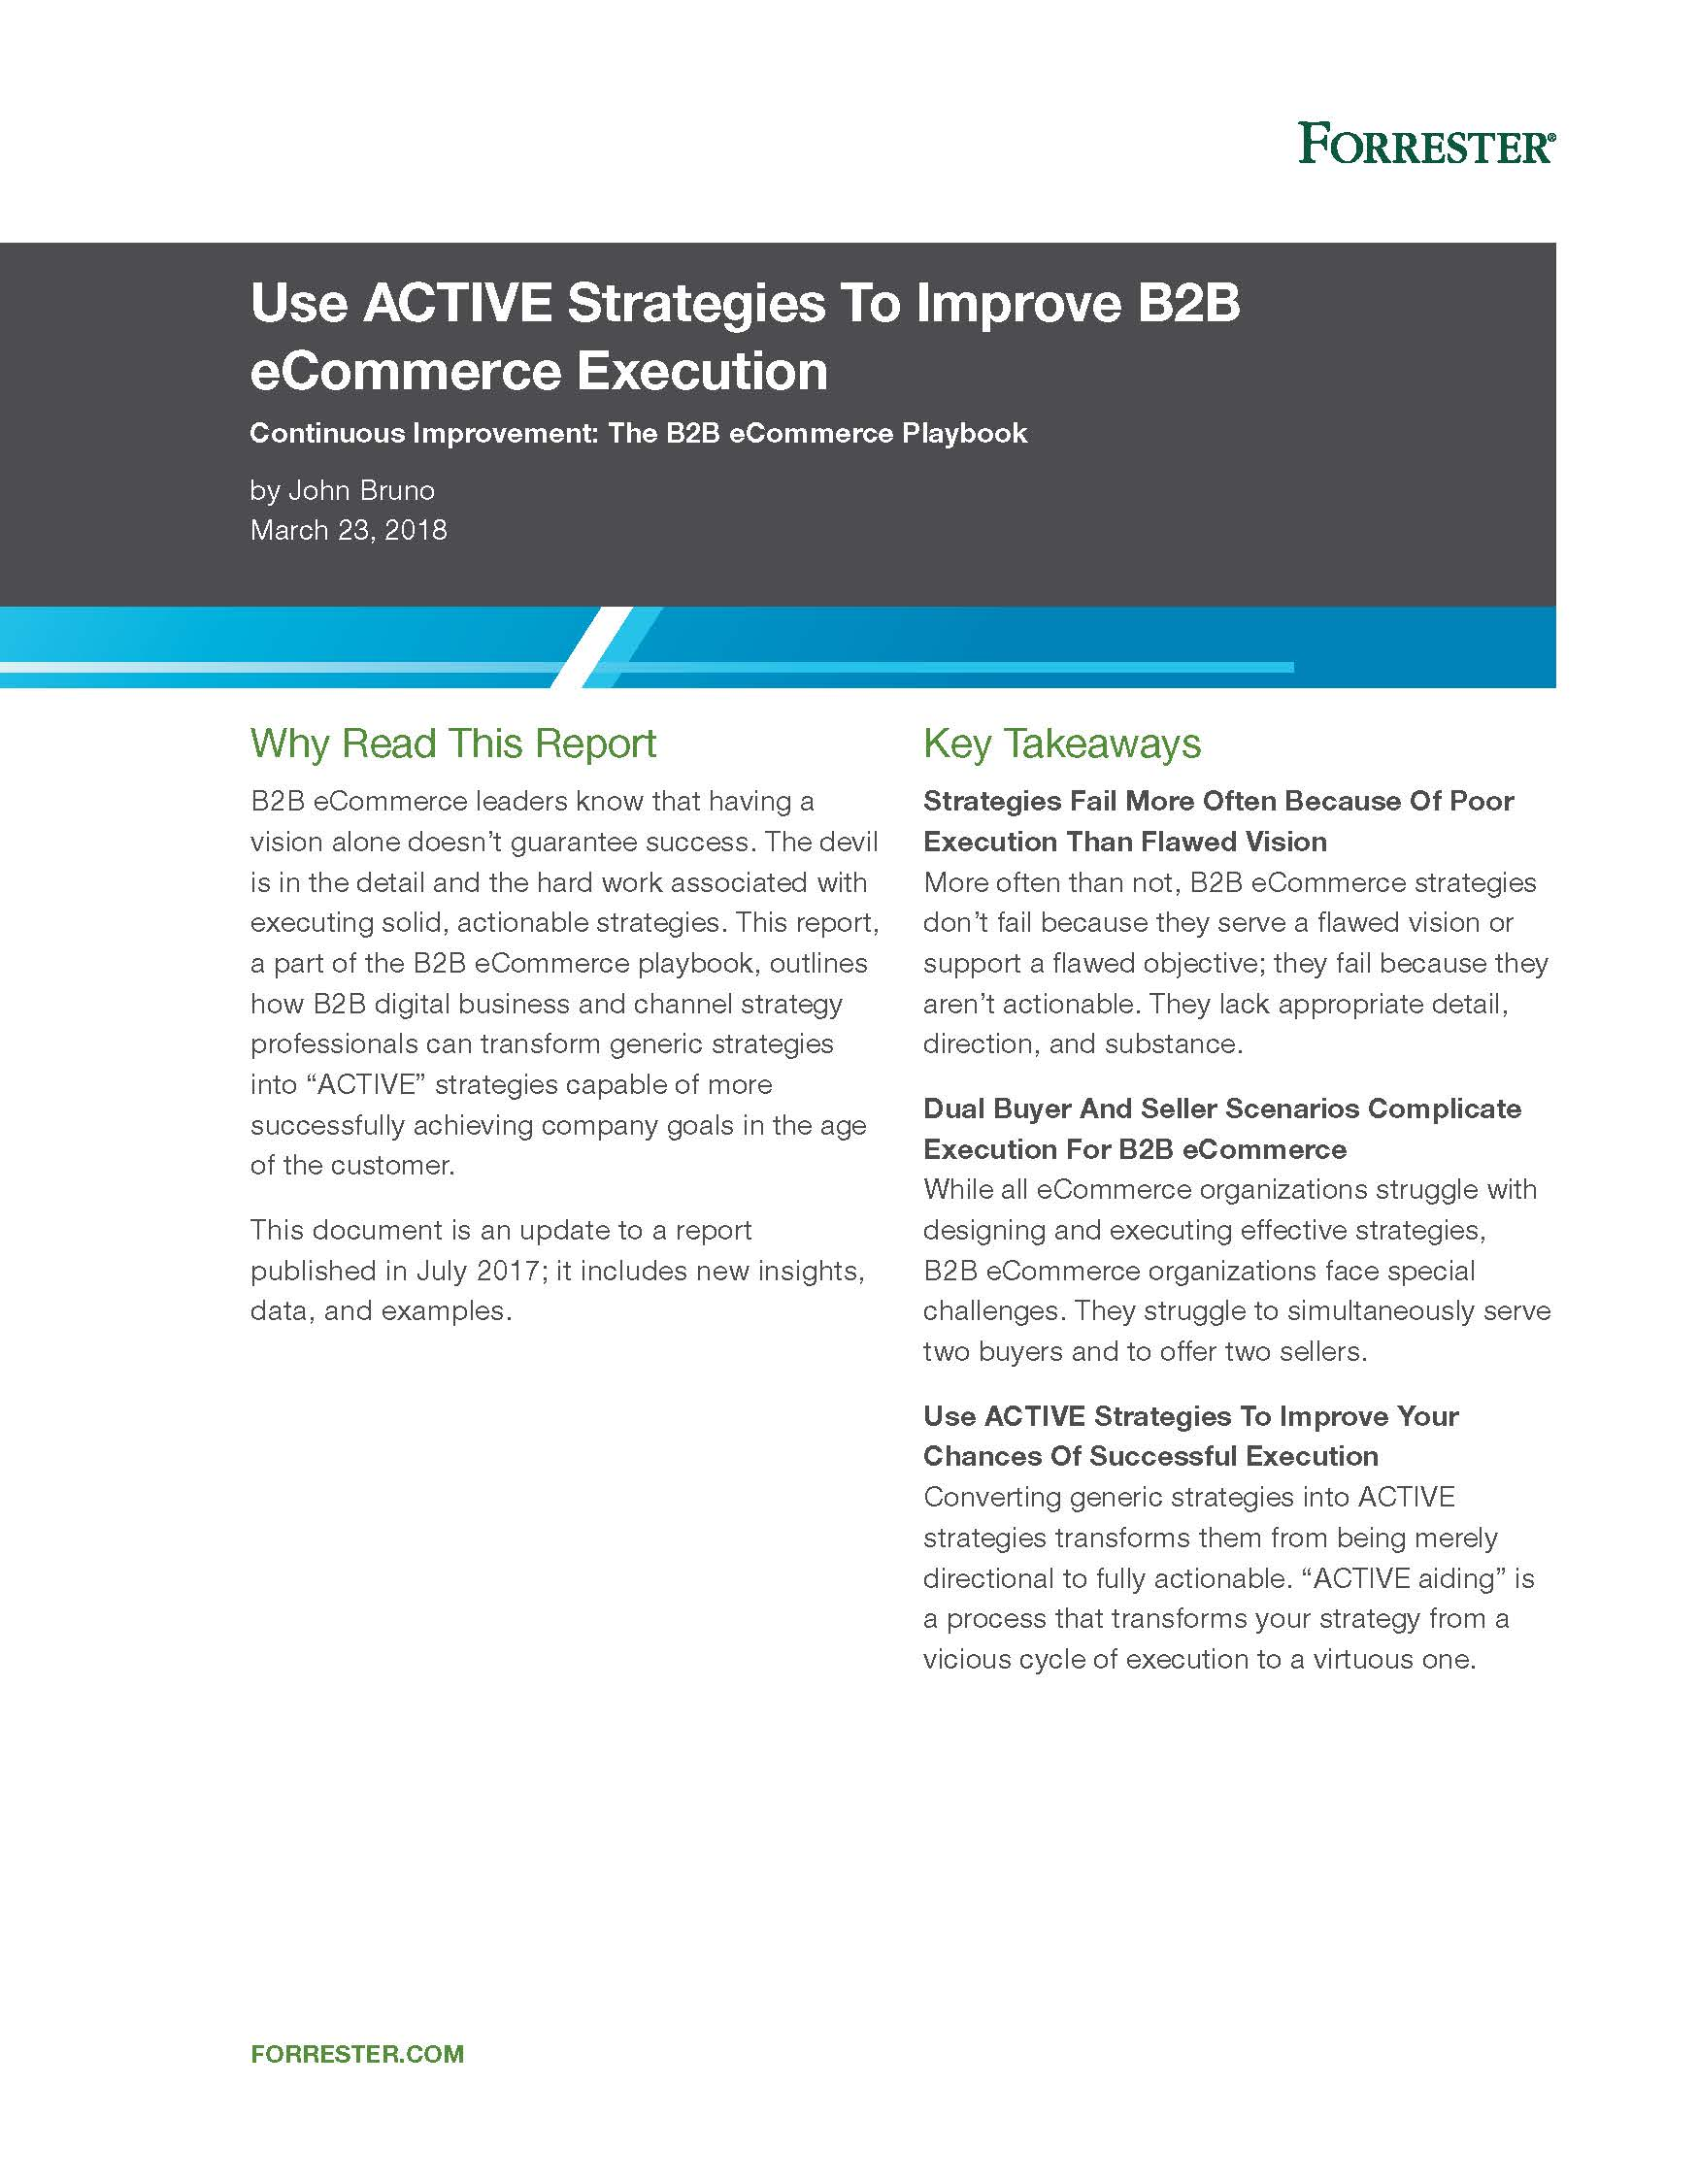 active-strategies-improve-b2b-ecommerce-execution